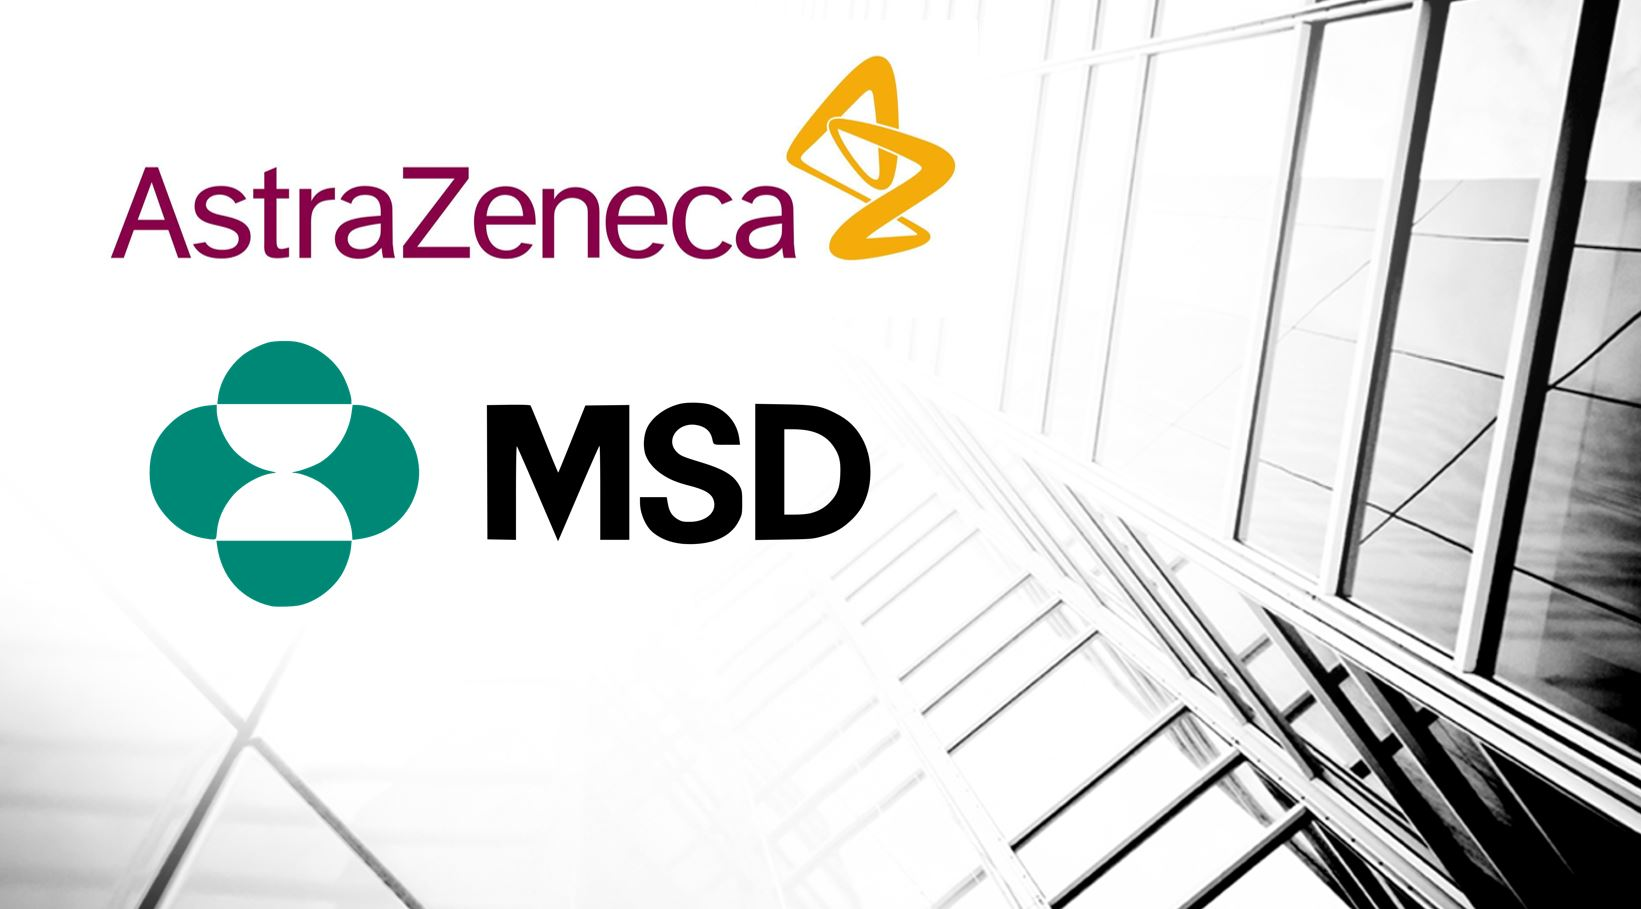 Pharma News - AstraZeneca and MSD ovarian cancer combo failed to meet primary endpoint